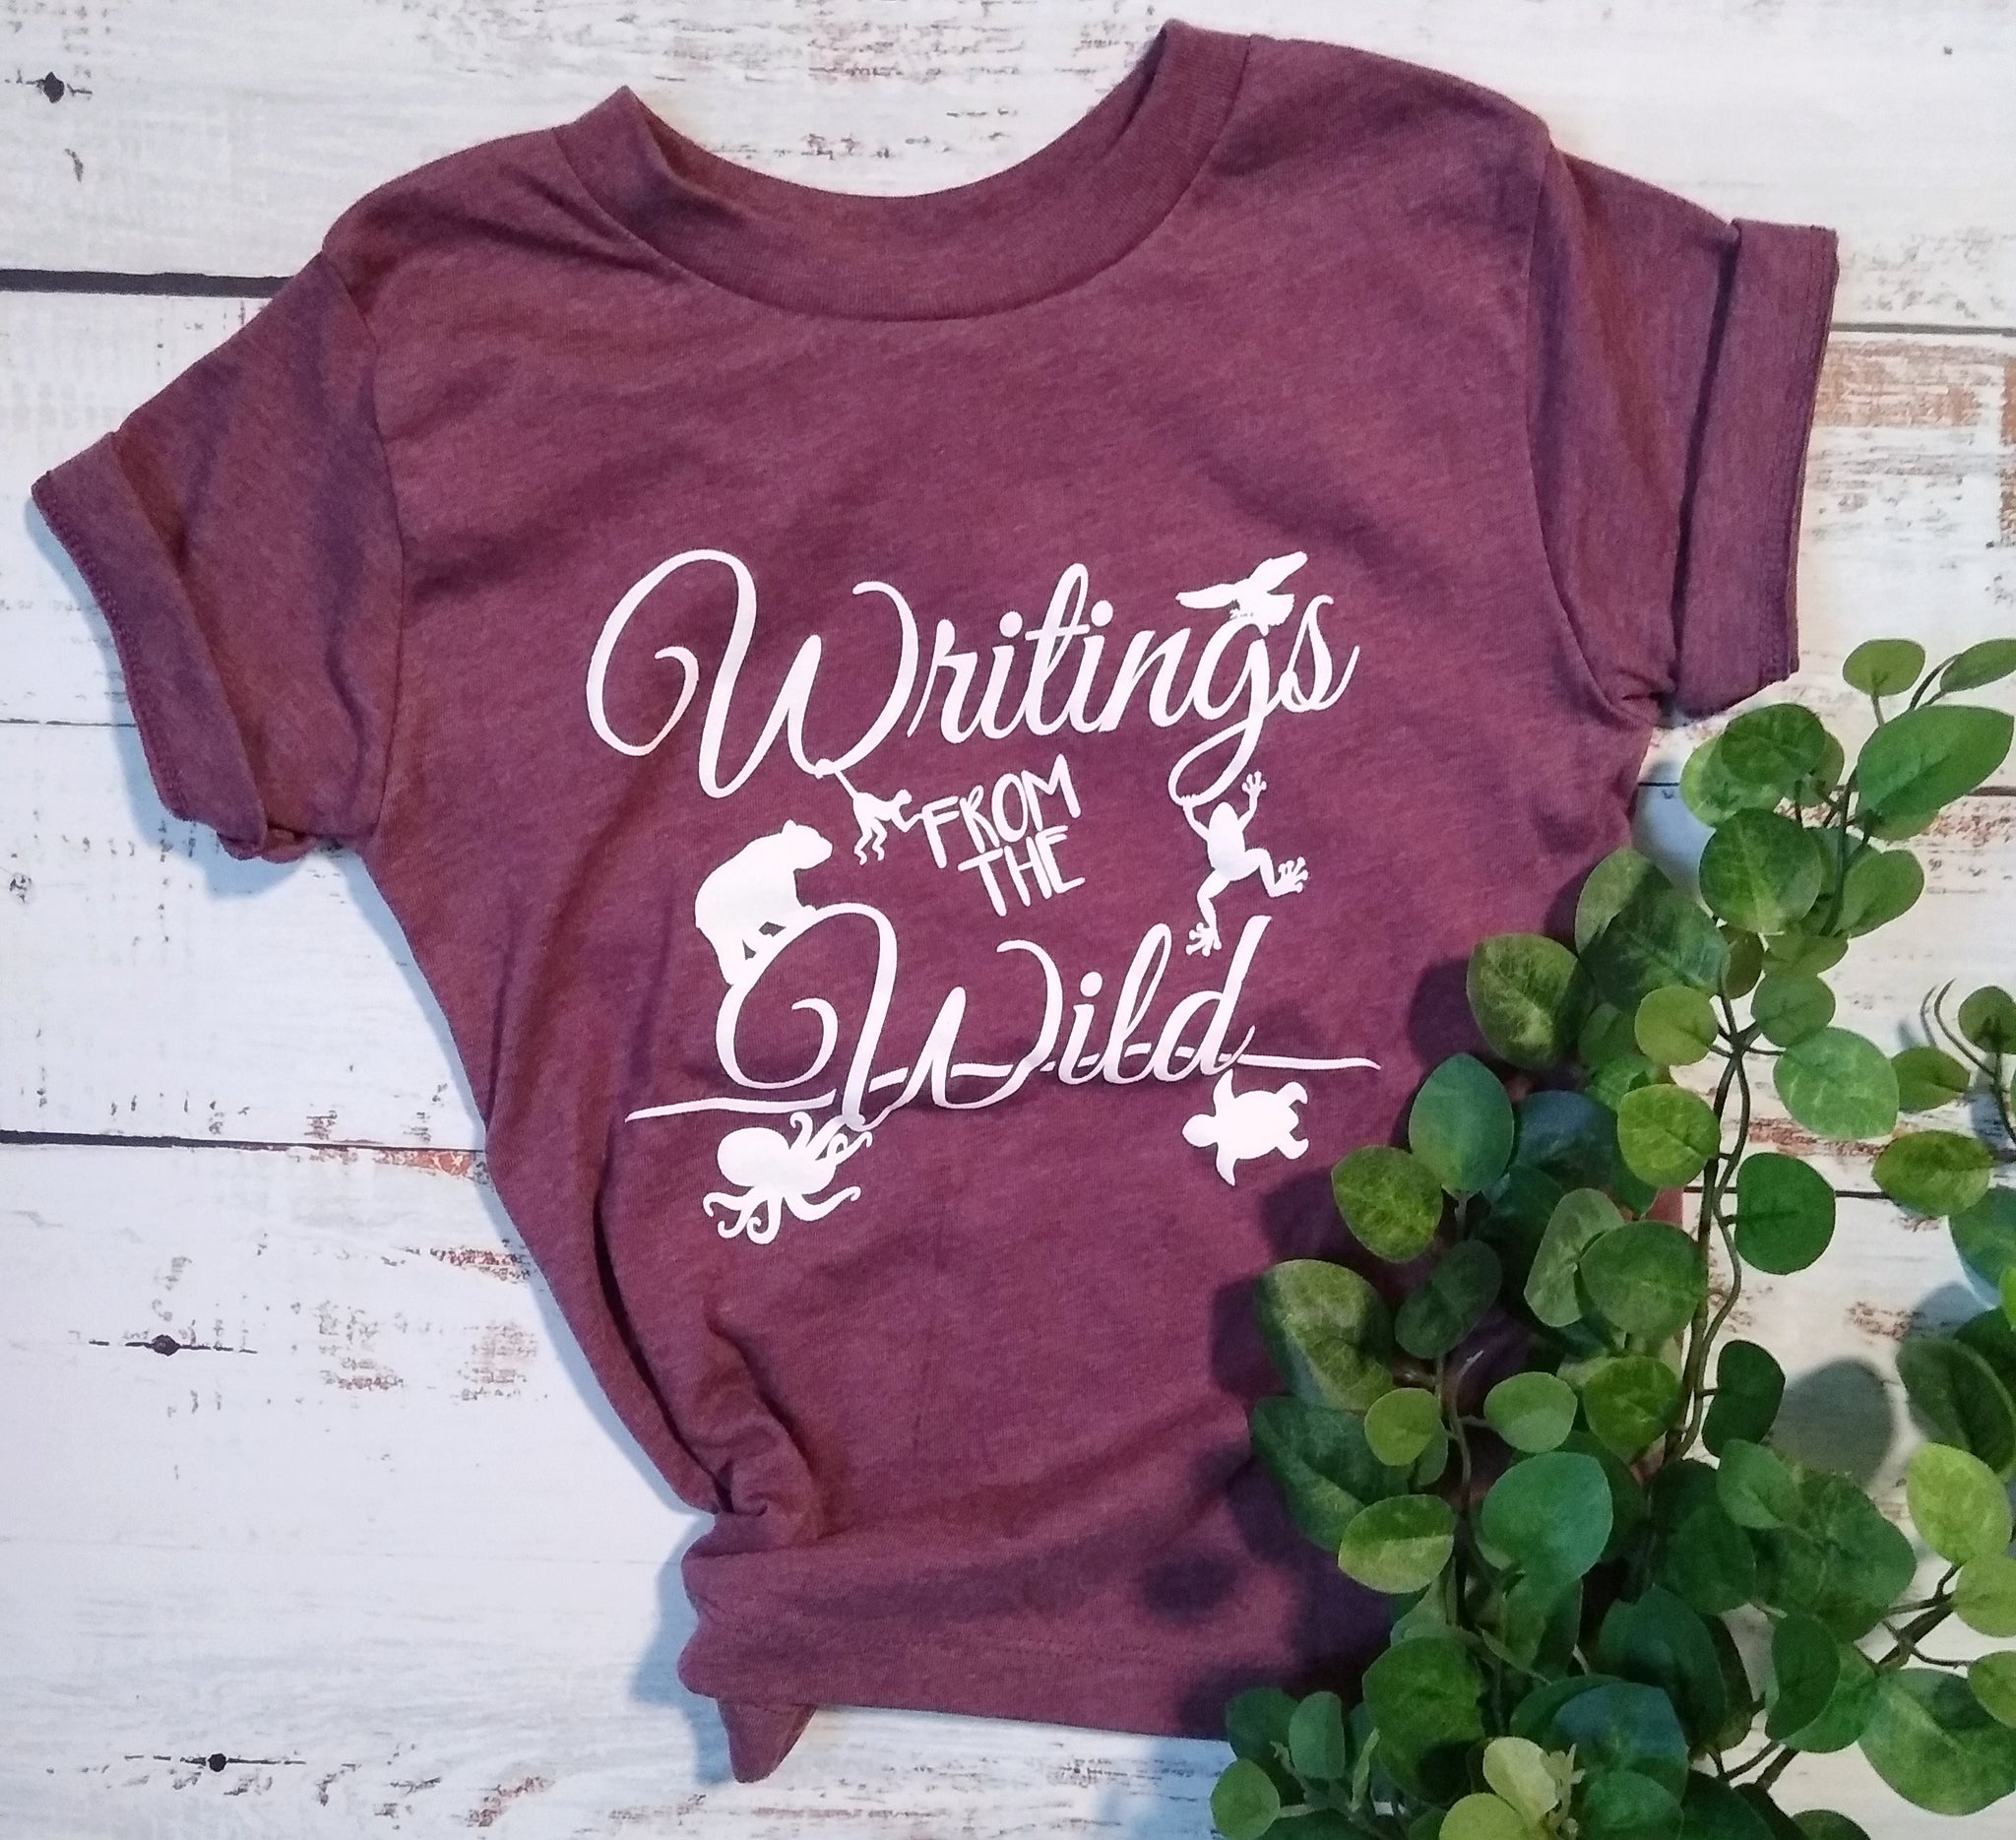 Short Sleeve - Heather Maroon